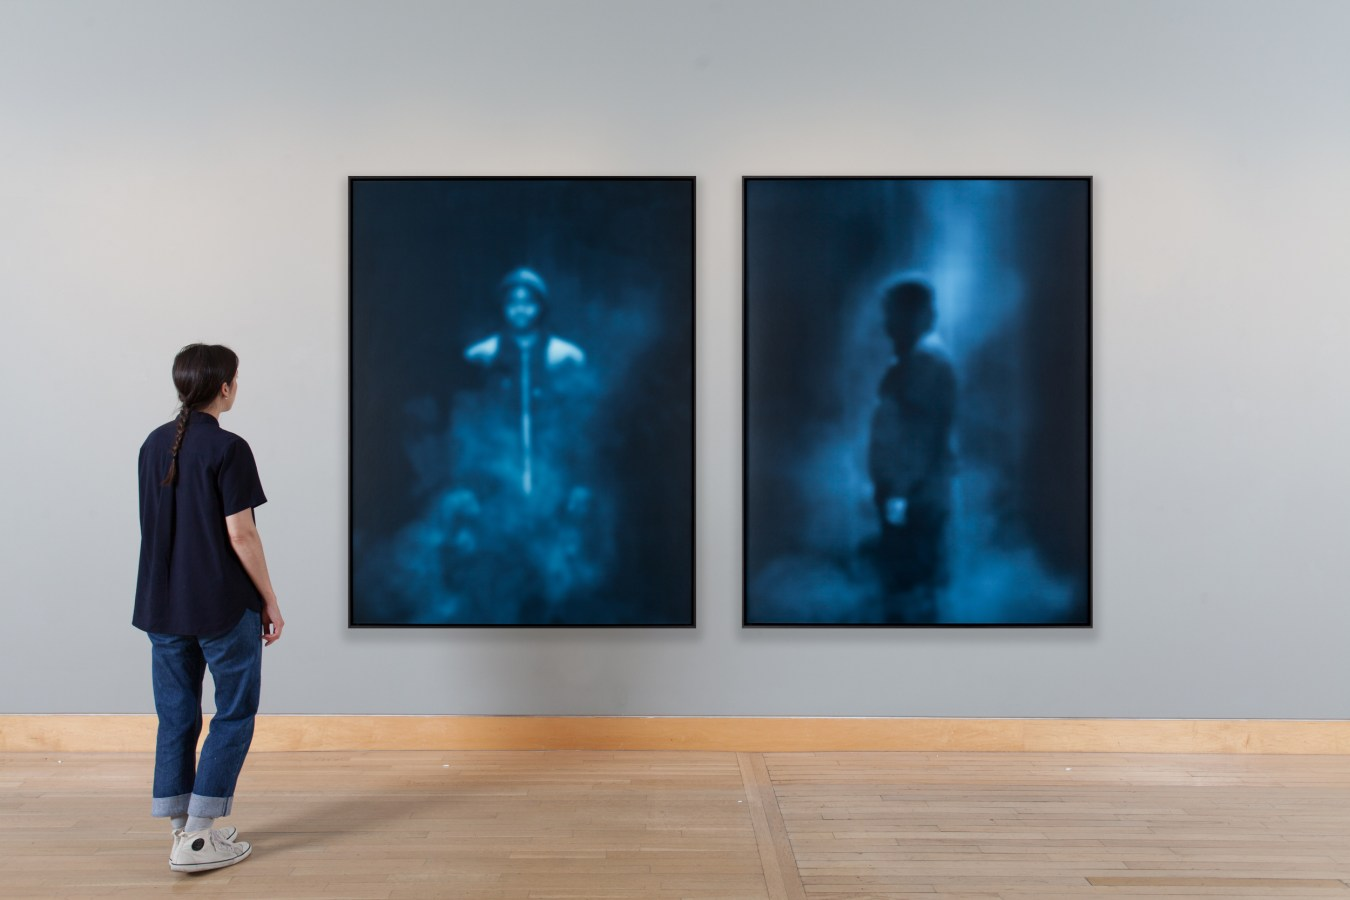 Installation view of a woman looking at a diptych of framed photographs.